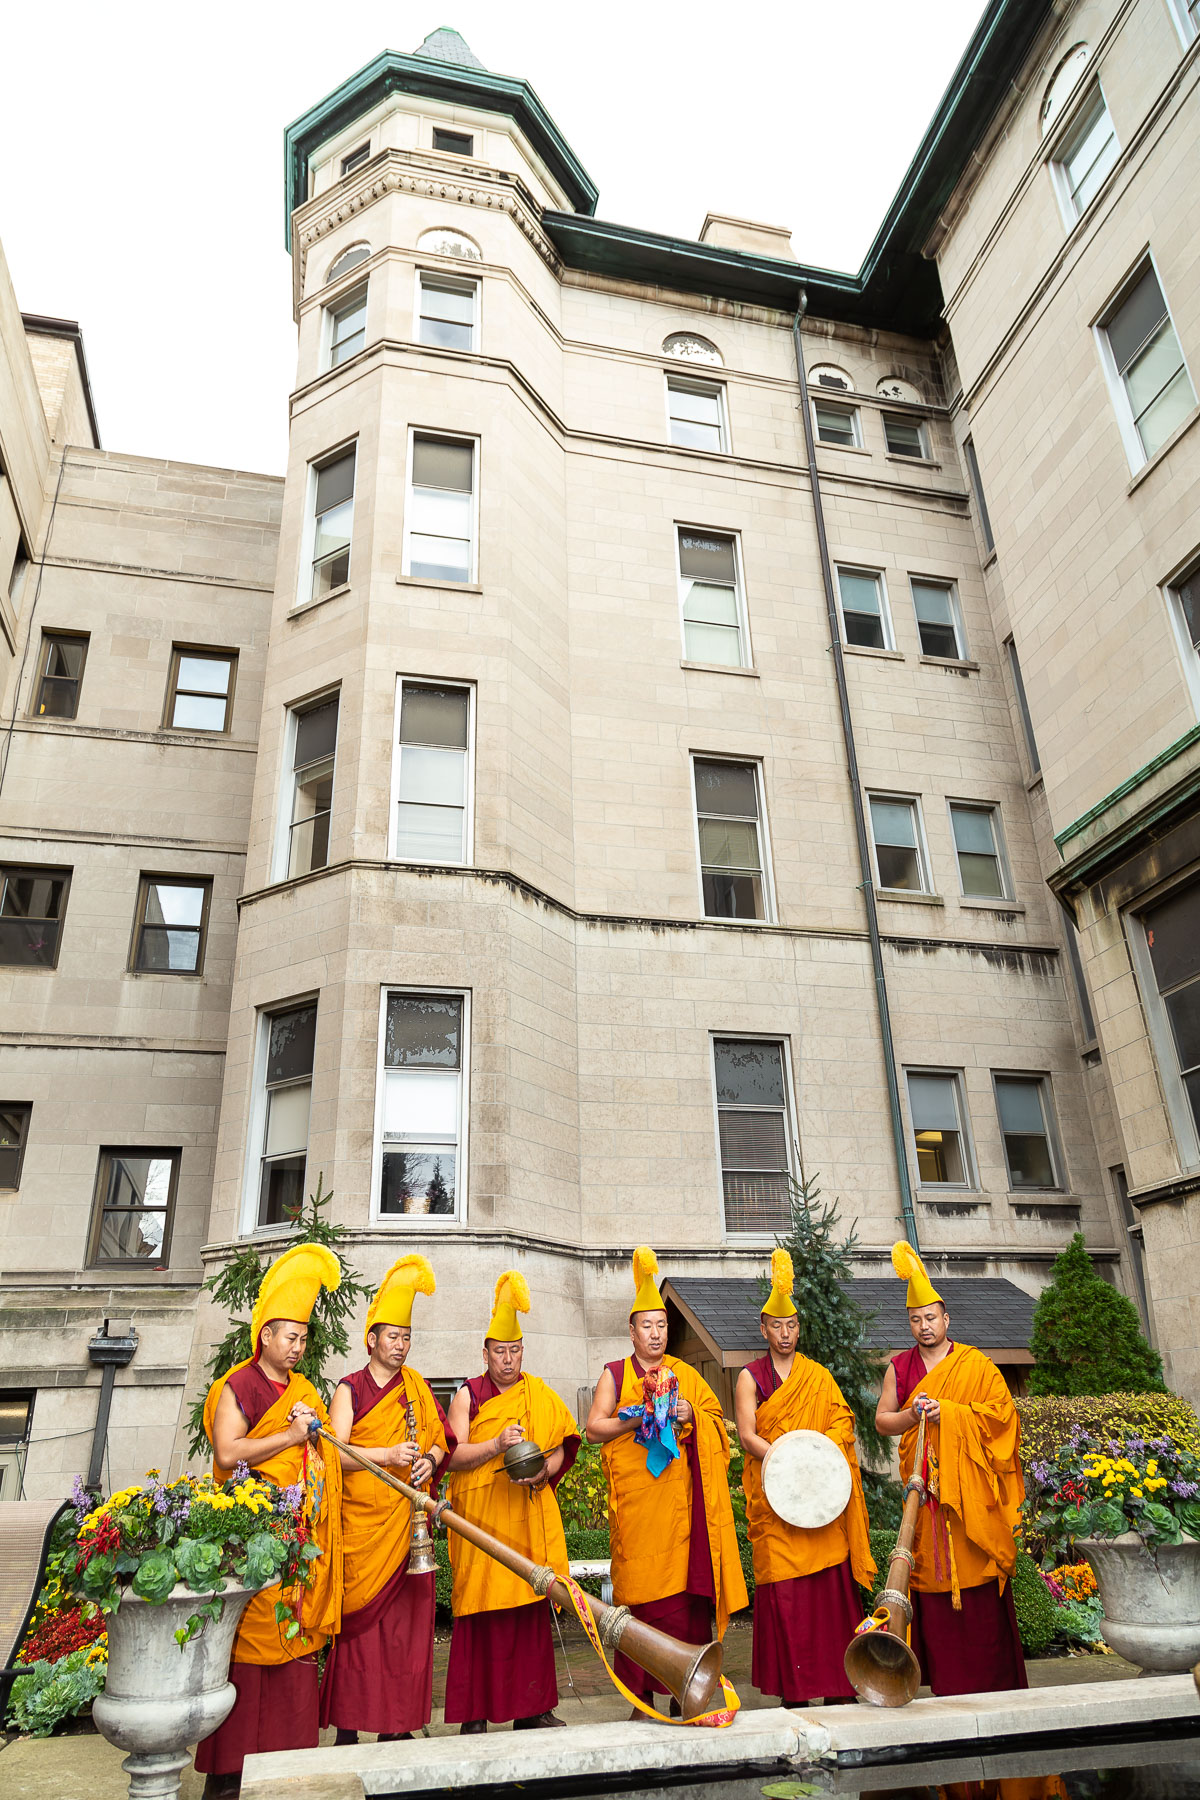 The monks continued the closing ceremony at the reflection pond in the Vincentian Residence courtyard. Their visit was sponsored by the DePaul Center for Religion, Culture and Community and the Department of Religious Studies. (DePaul University/Jeff Carrion)